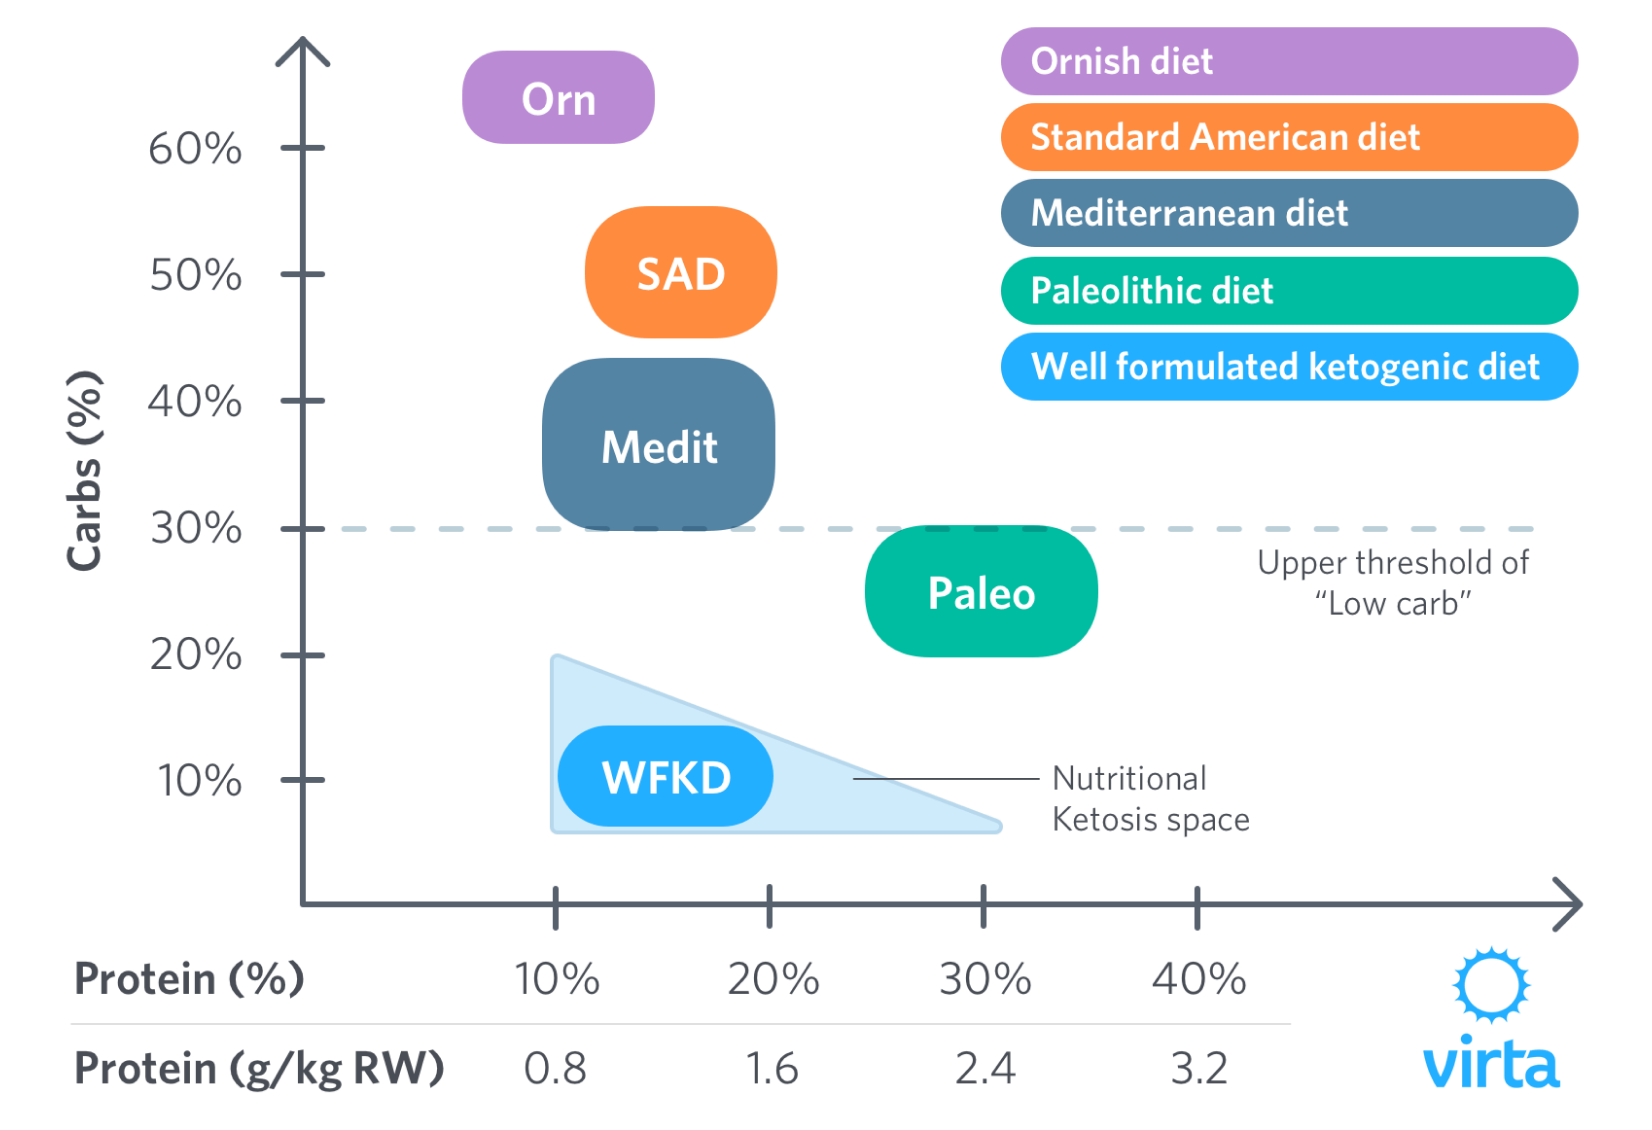 Diagram comparing the protein and carb percentage of common diets